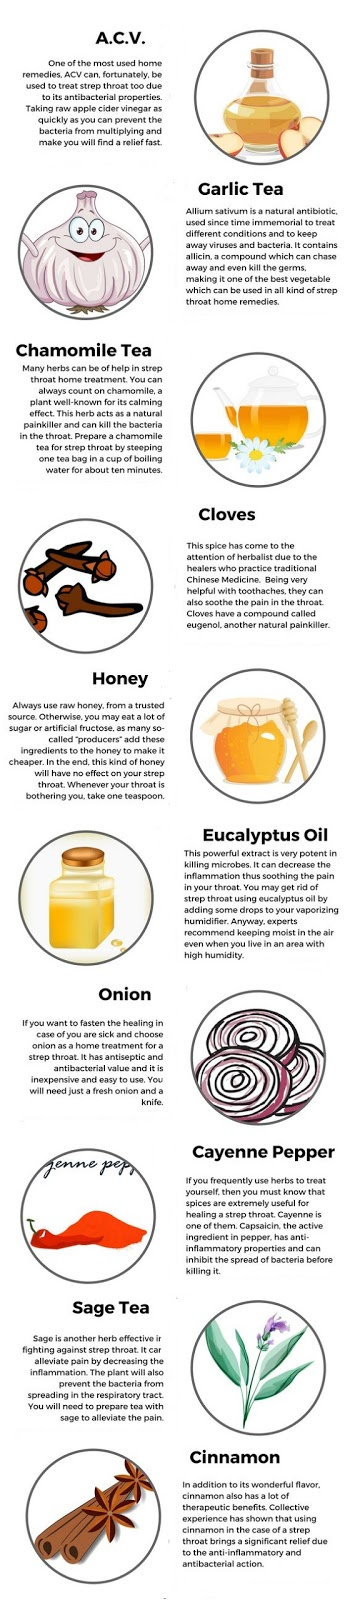 Home Remedies For Strep Throat How To Treat Strep Throat Naturally